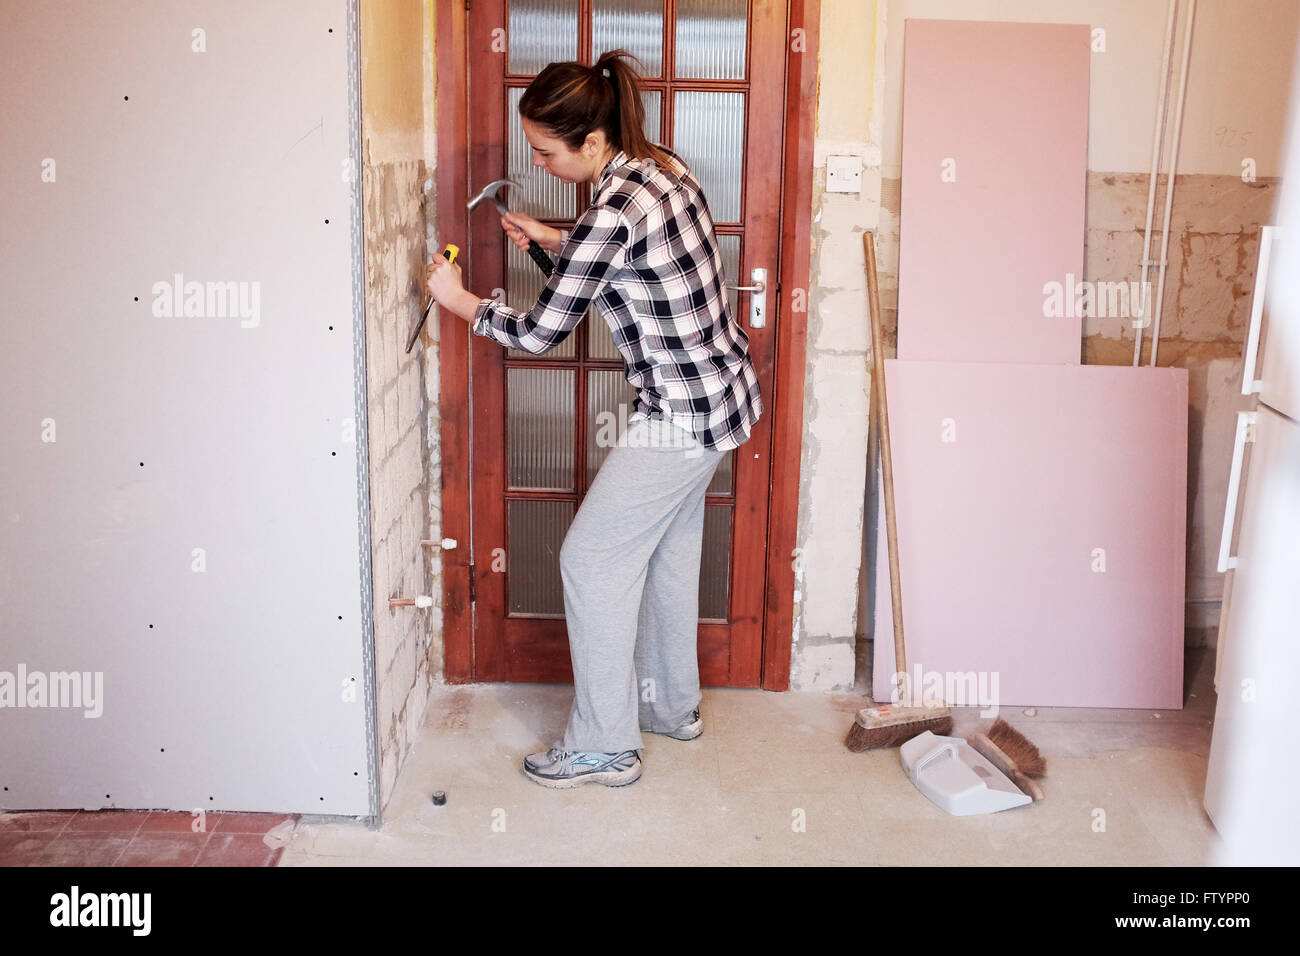 Awesome Young Woman With Hammer And Chisel Taking Off Wall Tiles In Kitchen In Her  20s Doing DIY At Her Bungalow Home